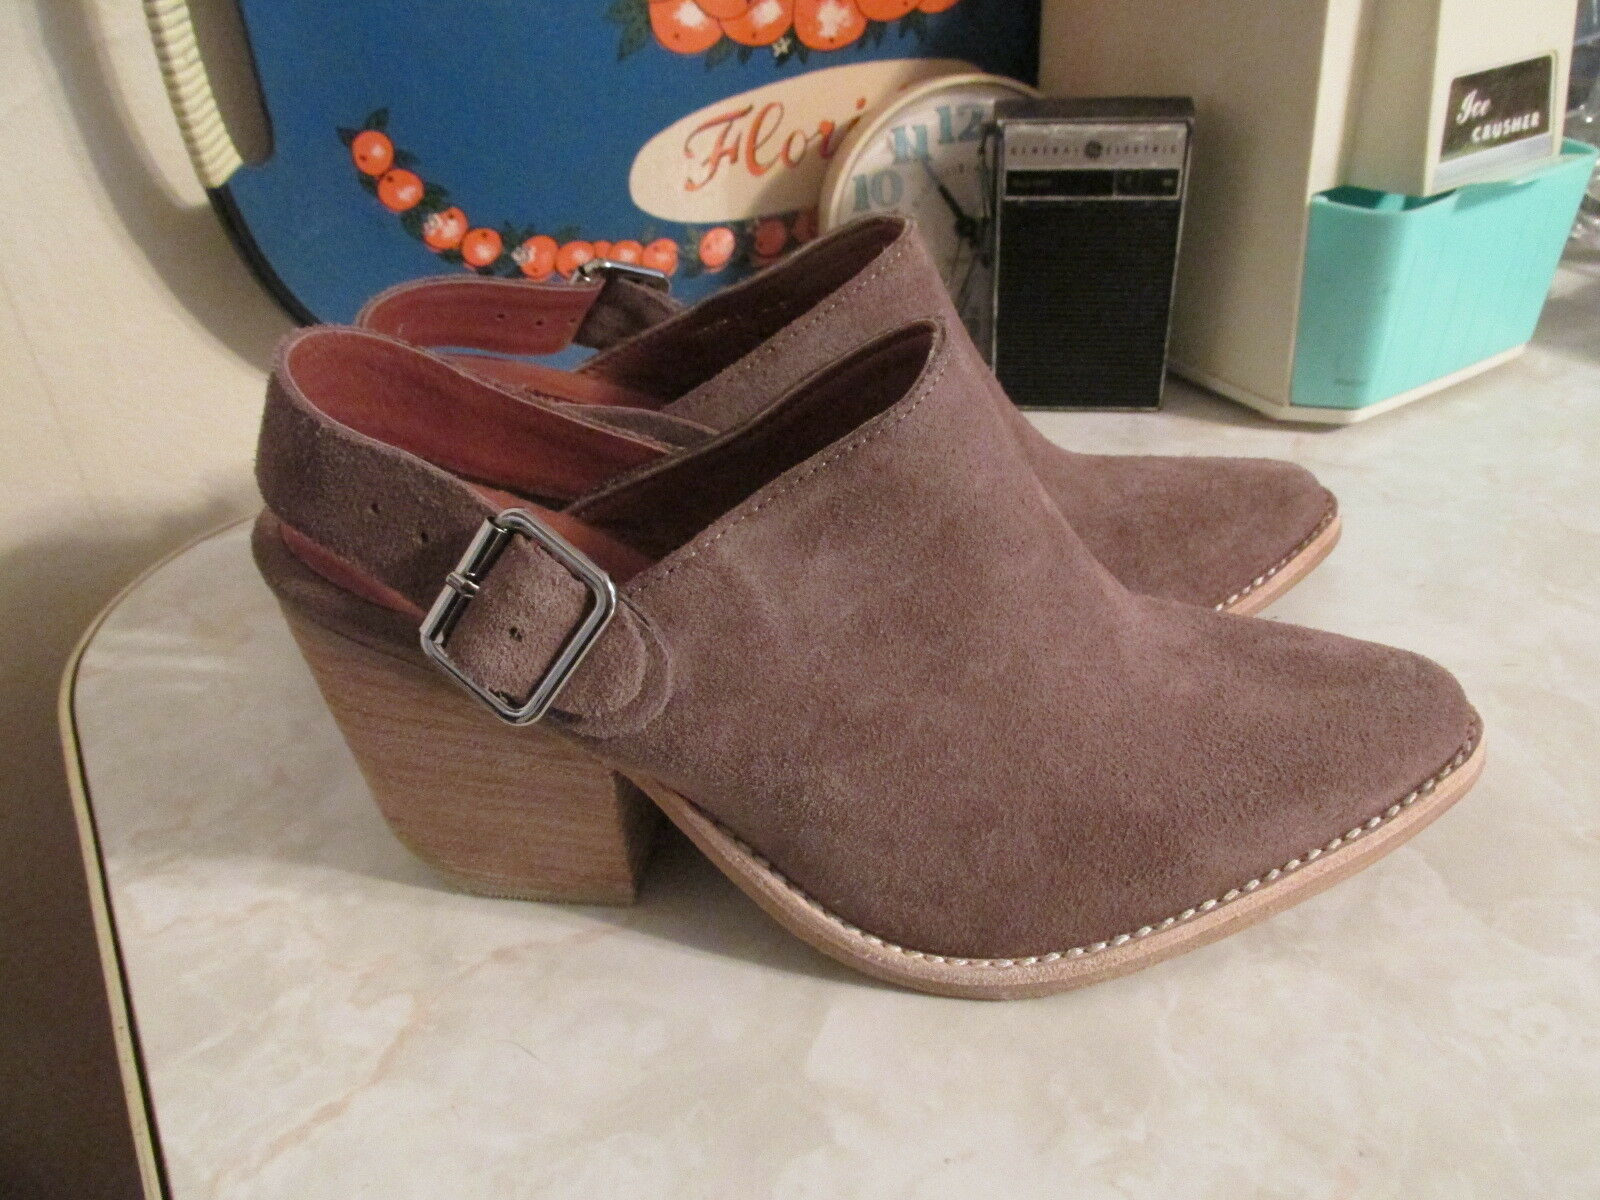 Jeffrey Campbell Route 66 Tan Suede Mule size 7.5 Slingback Buckle or Slip On